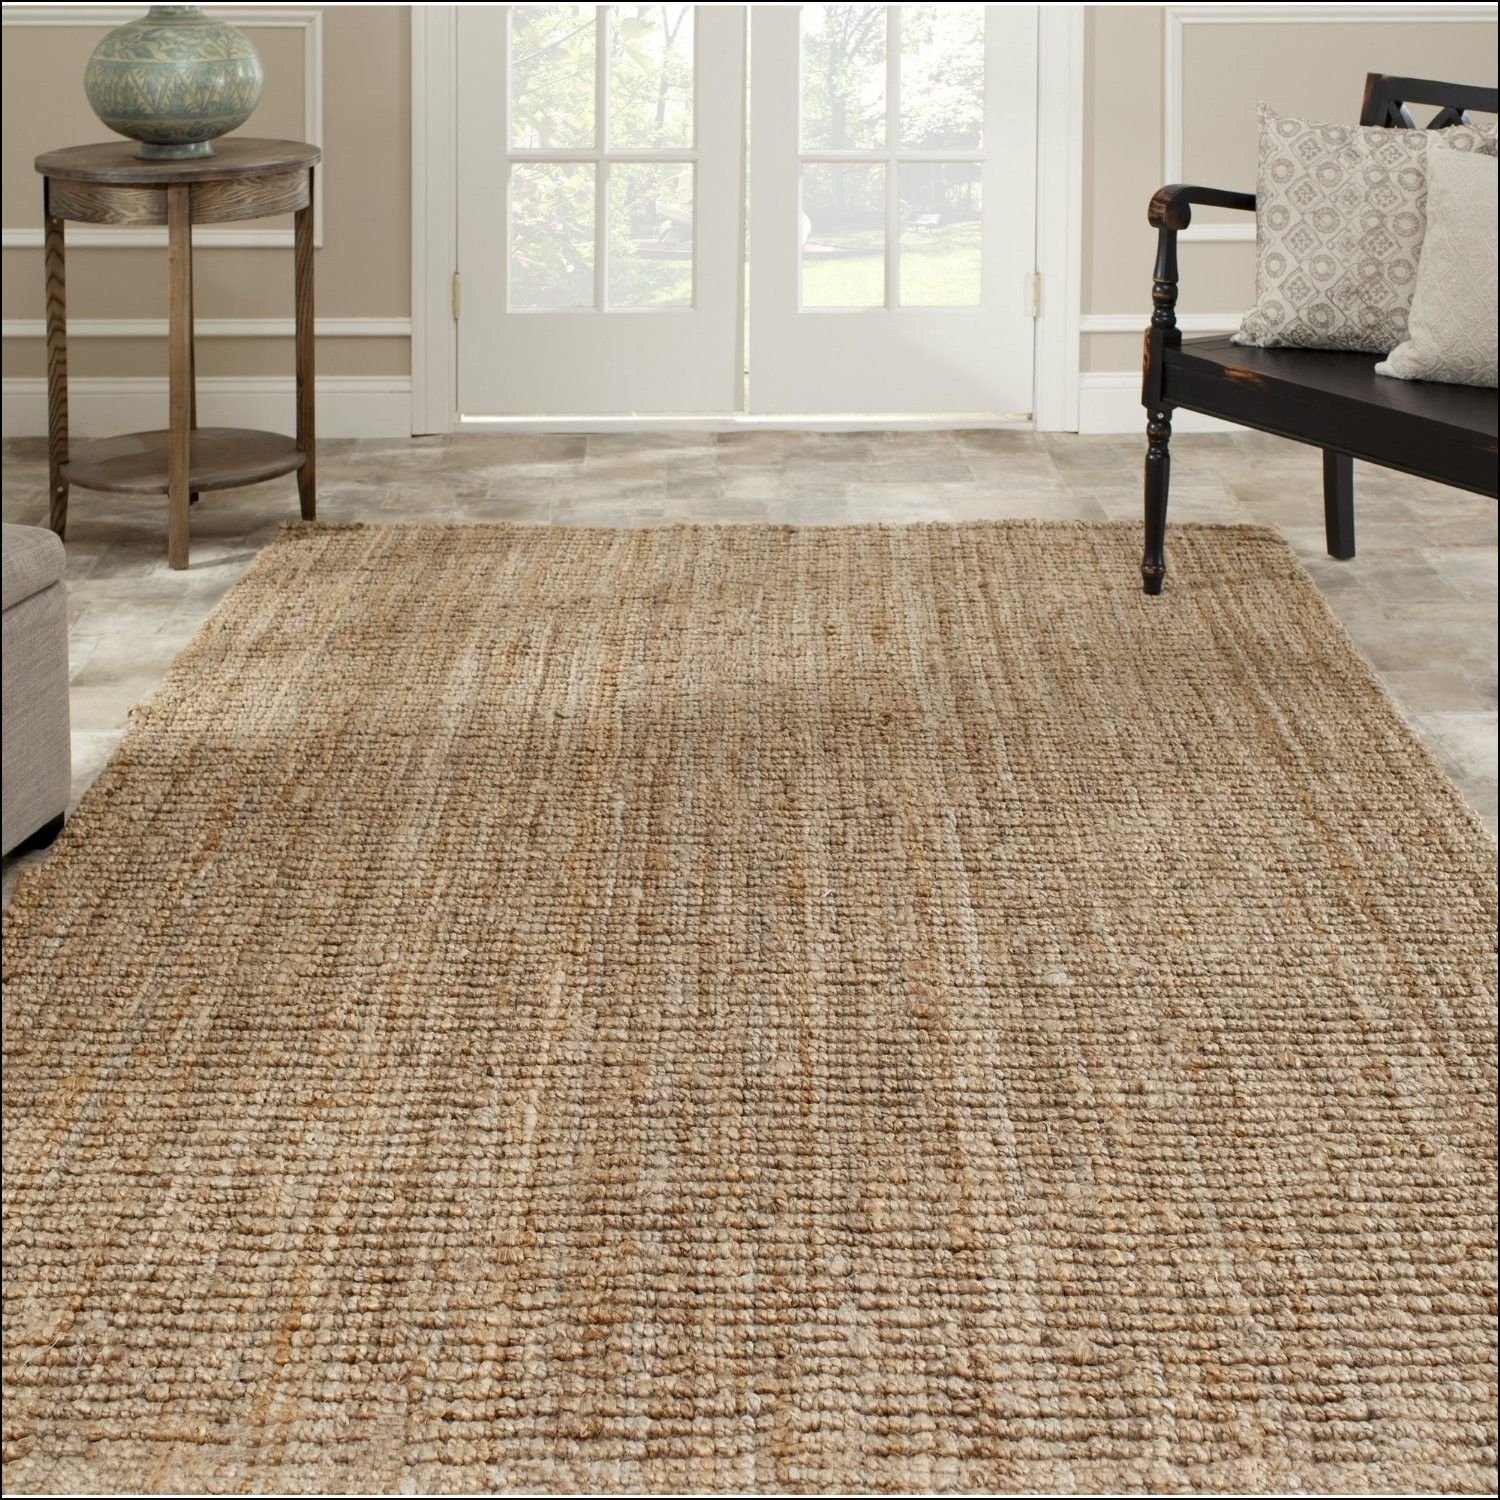 10 X 14 Outdoor Area Rugs Sisal Area Rugs Braided Area Rugs Natural Area Rugs